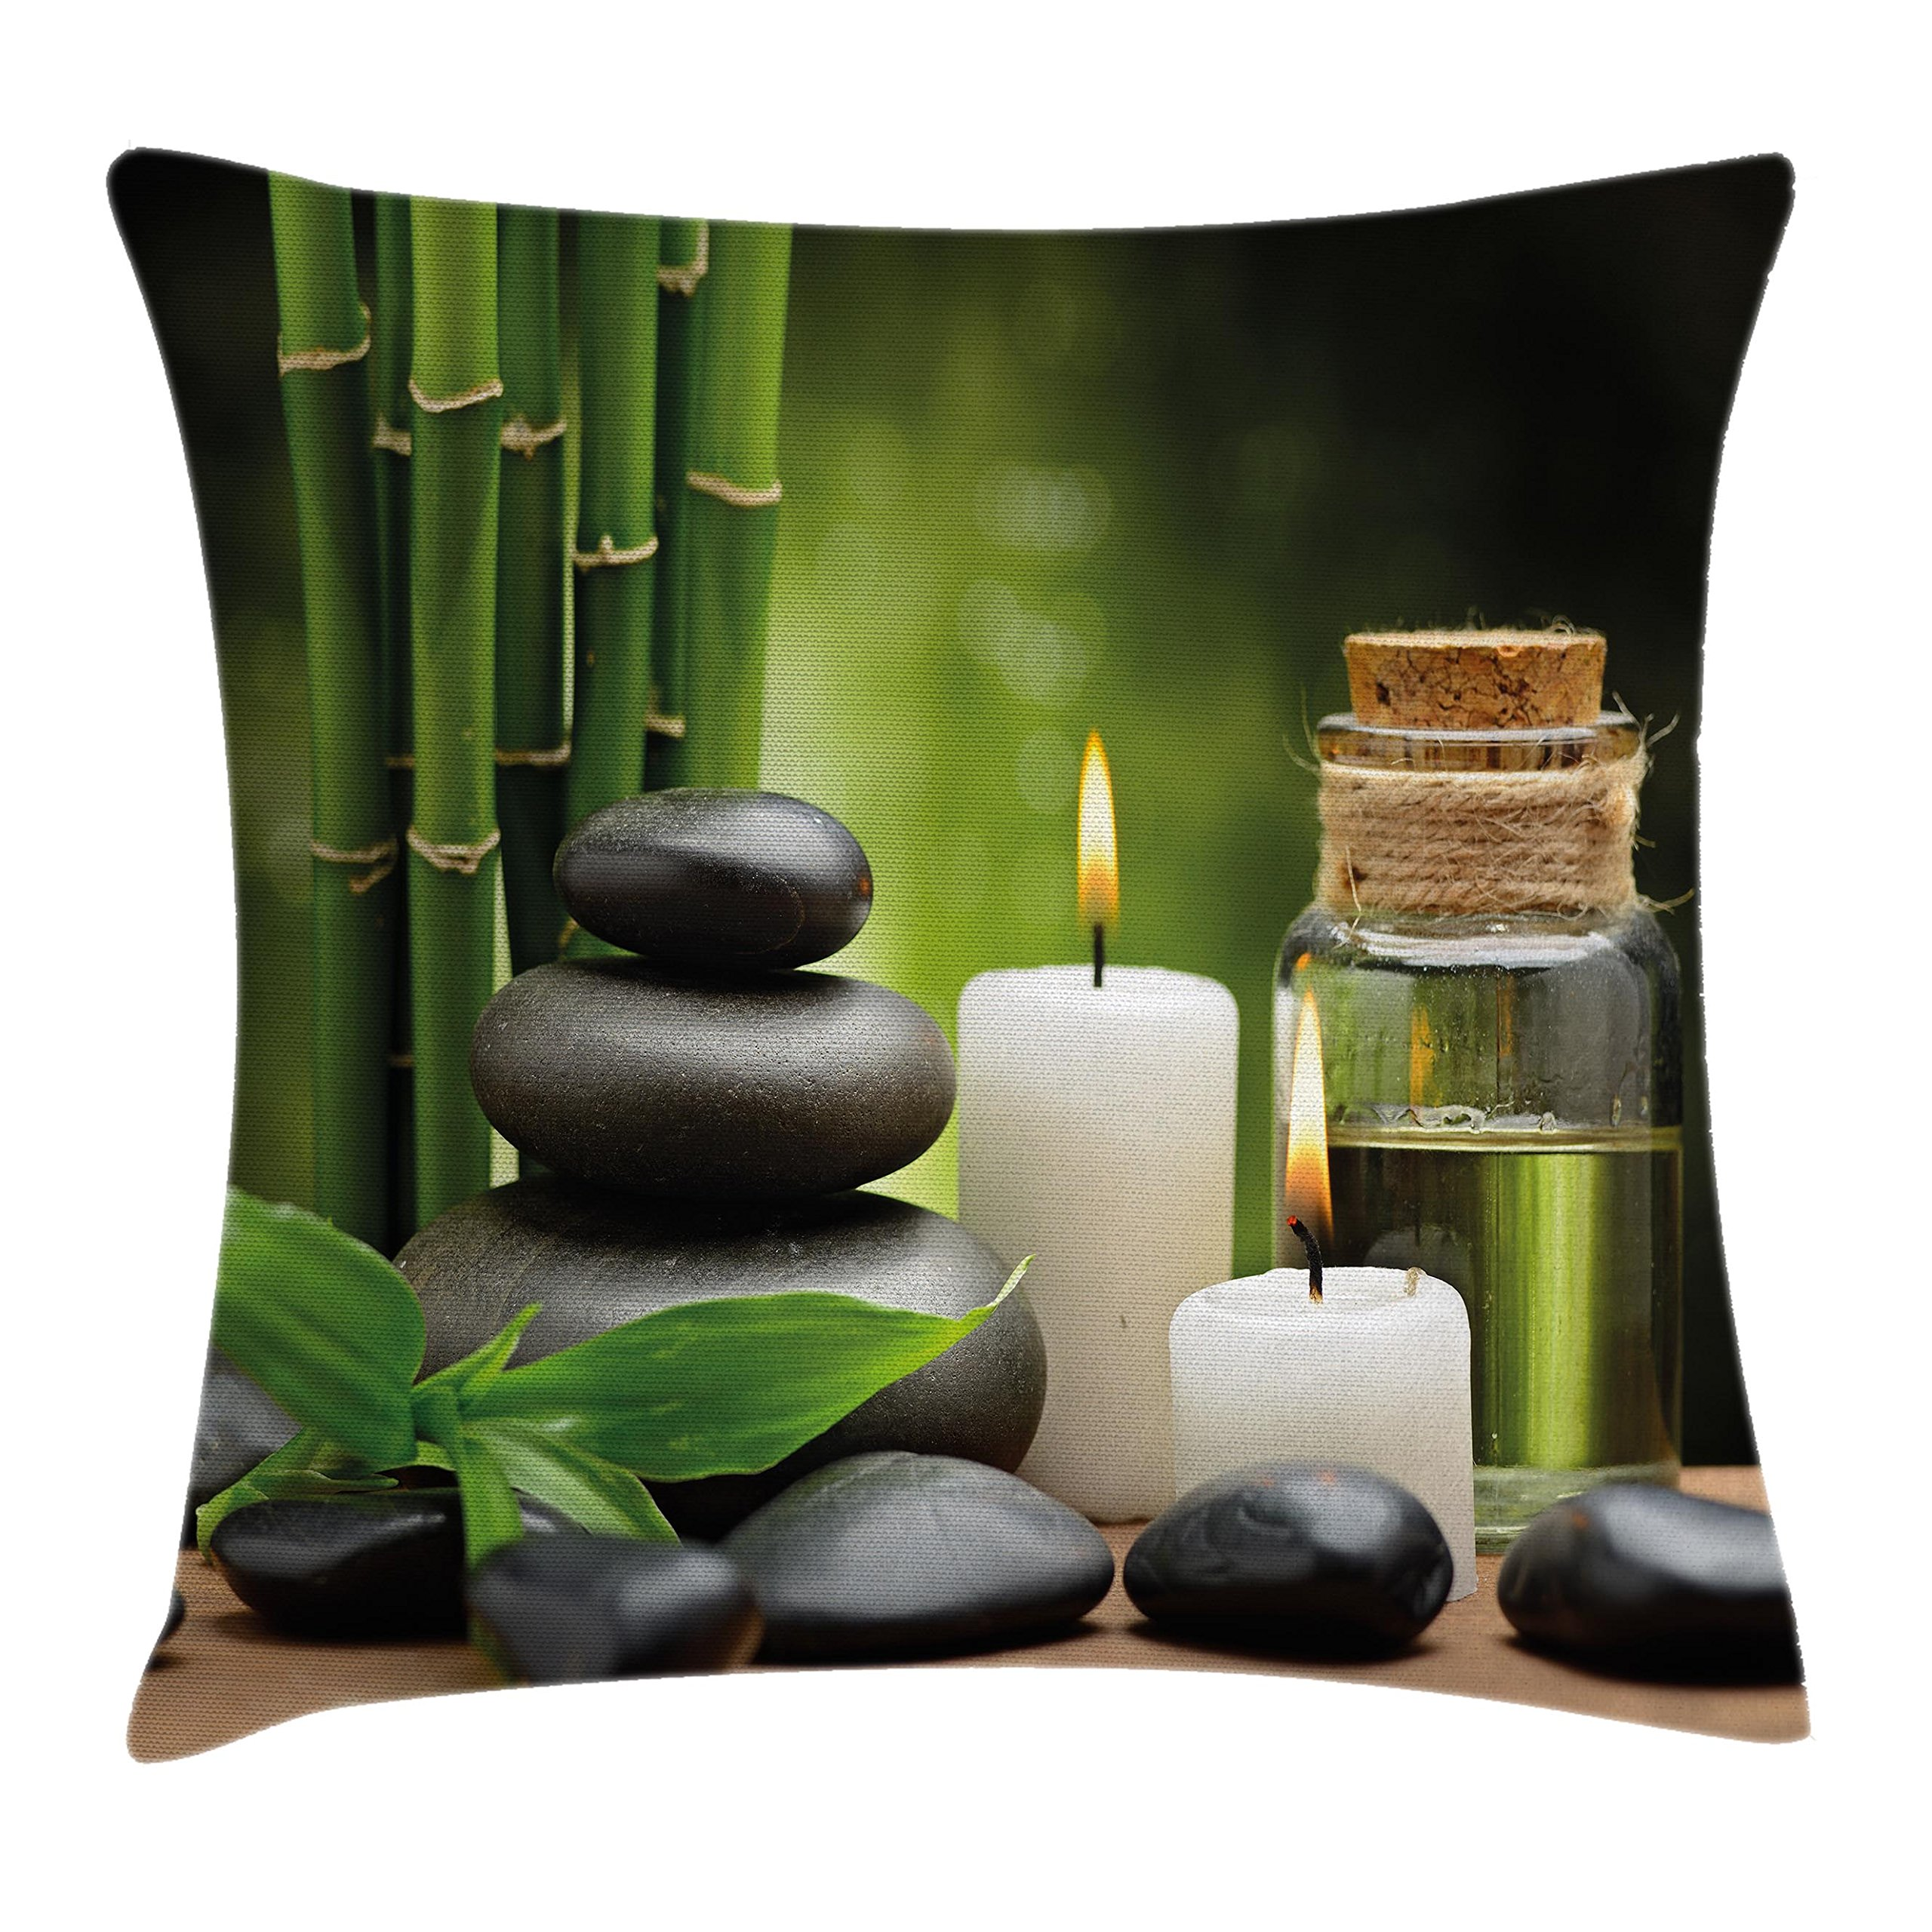 Ambesonne Spa Decor Throw Pillow Cushion Cover, Hot Massage Rocks Combined with Candles and Scents Landscape of Bamboo, Decorative Square Accent Pillow Case, 18 X 18 Inches, Green White and Black